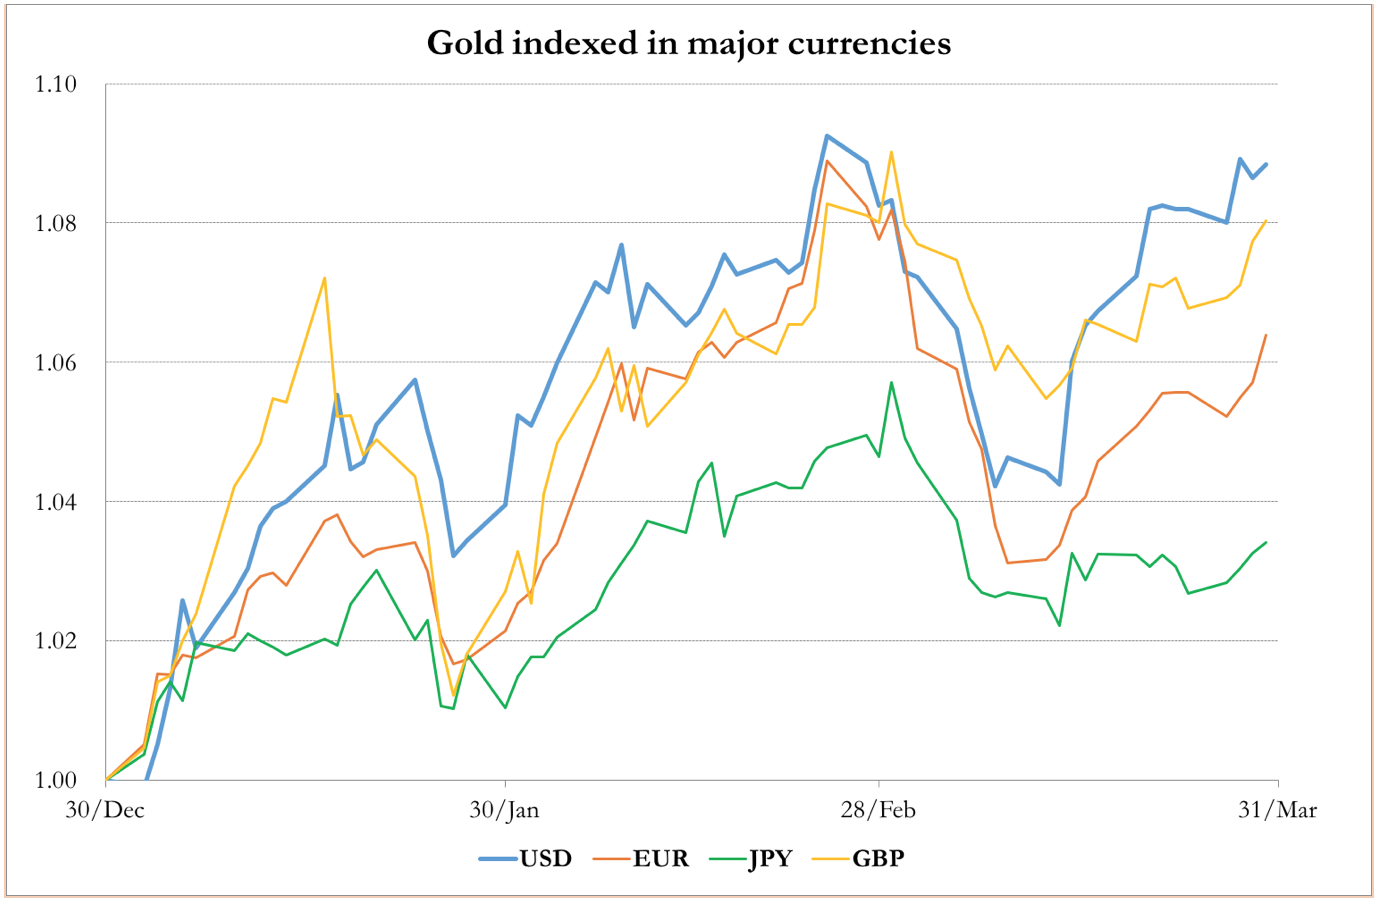 Gold vs. Major Currencies USD, EUR, JPY, GBP March 2017